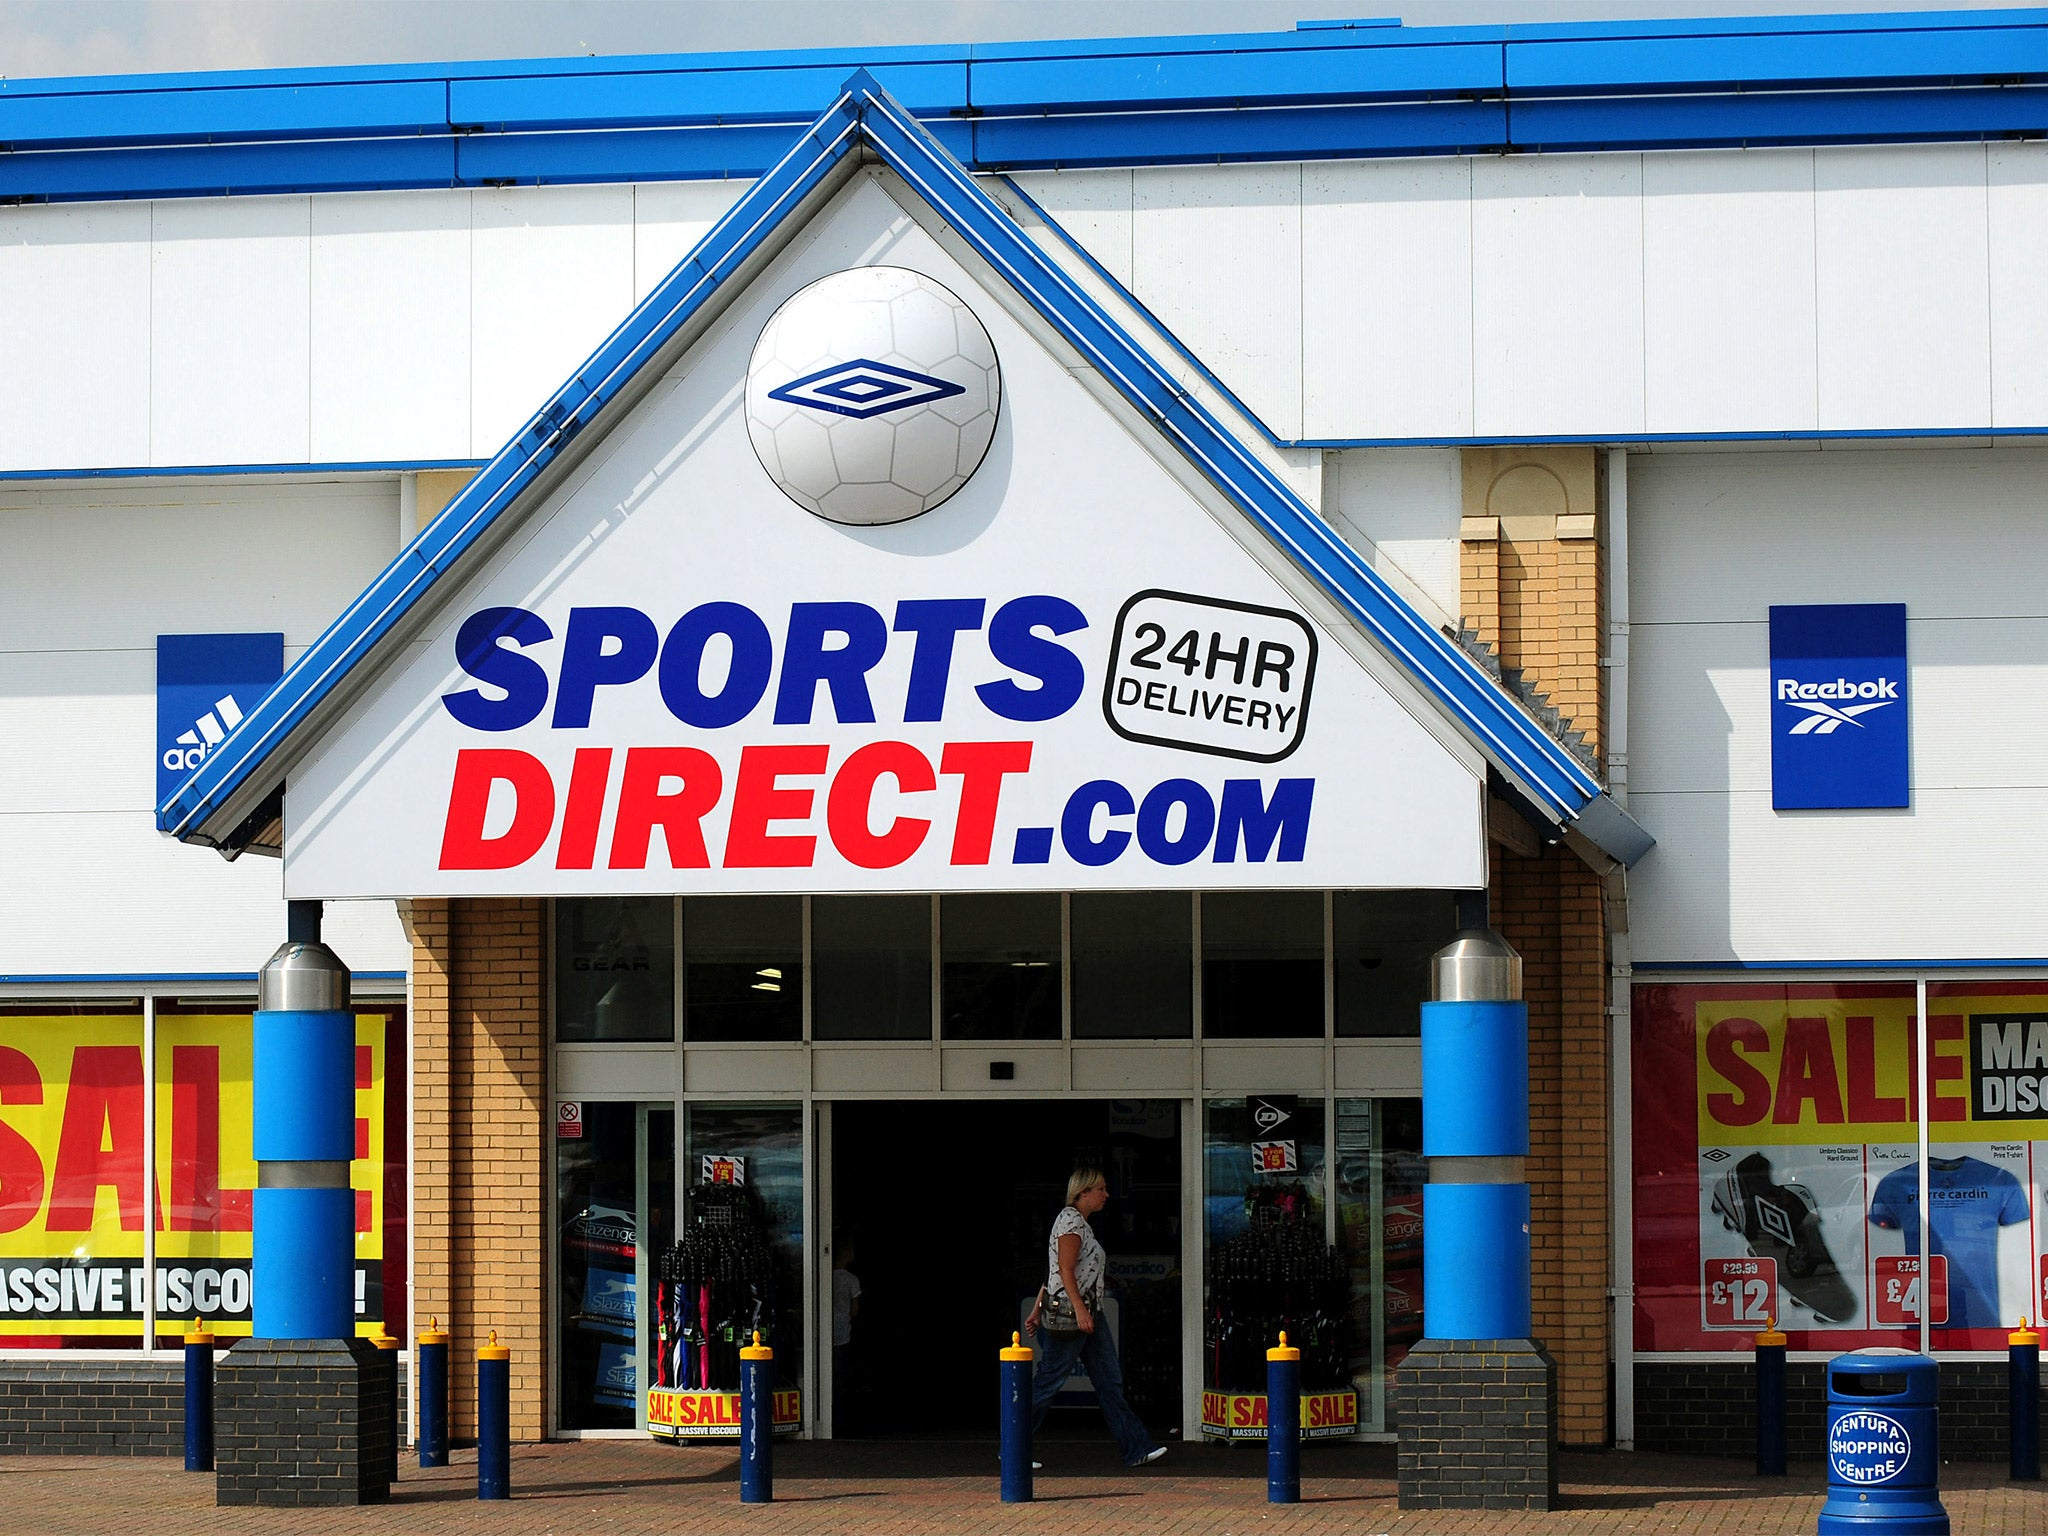 http://static.independent.co.uk/s3fs-public/thumbnails/image/2014/12/15/11/web-sports-direcT2.jpg